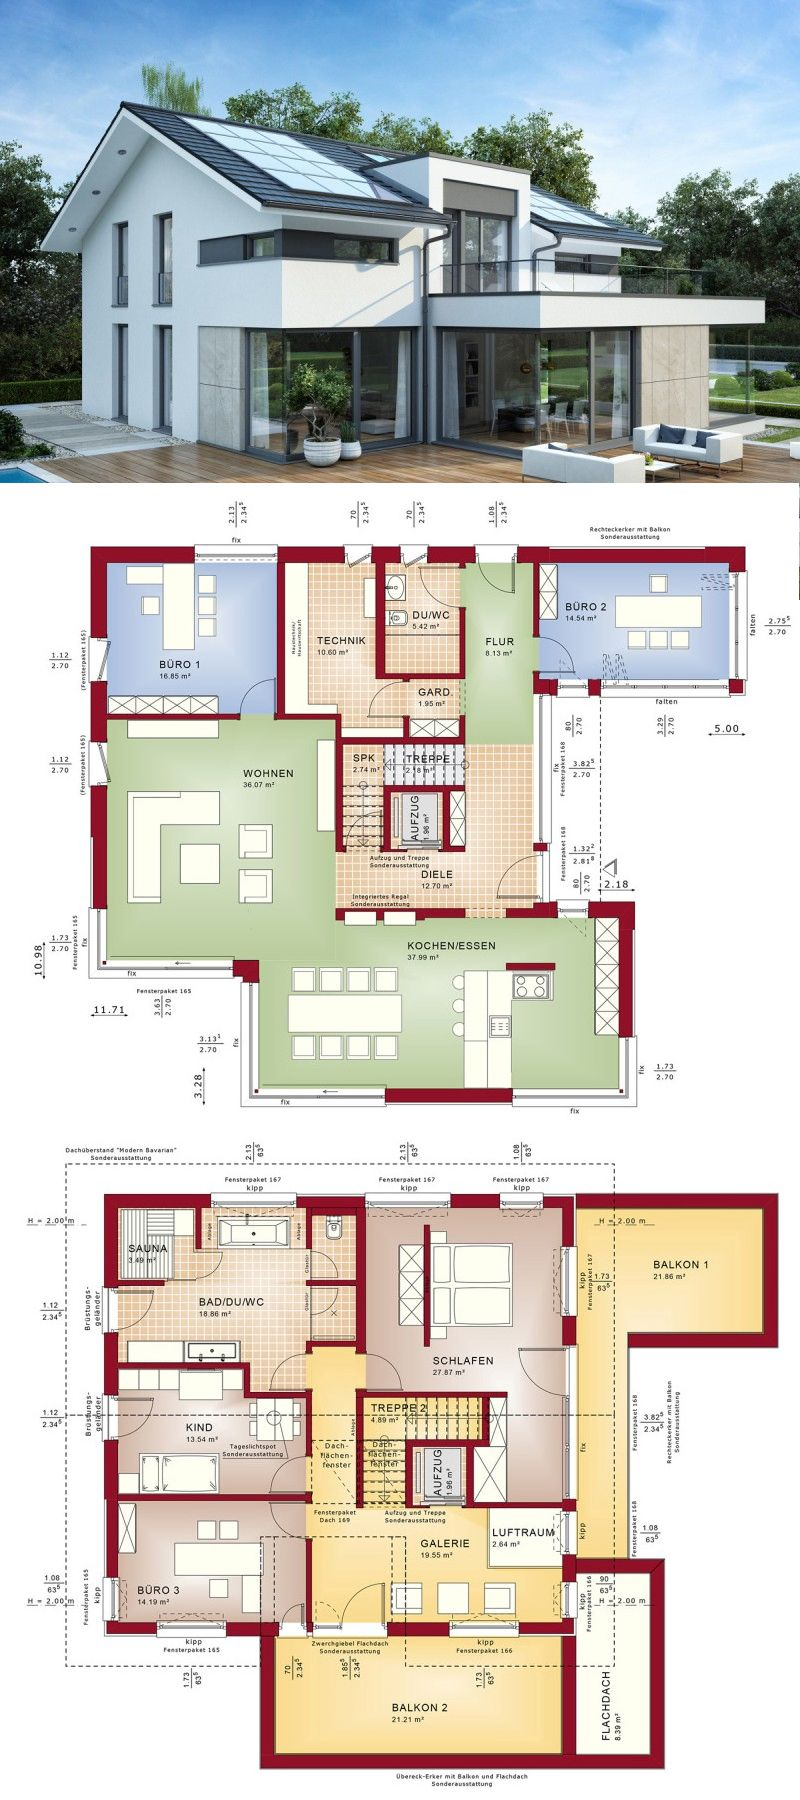 Two Storey Model House With Inspiring Perspective Architectural House Plans House Layout Plans House Architecture Design